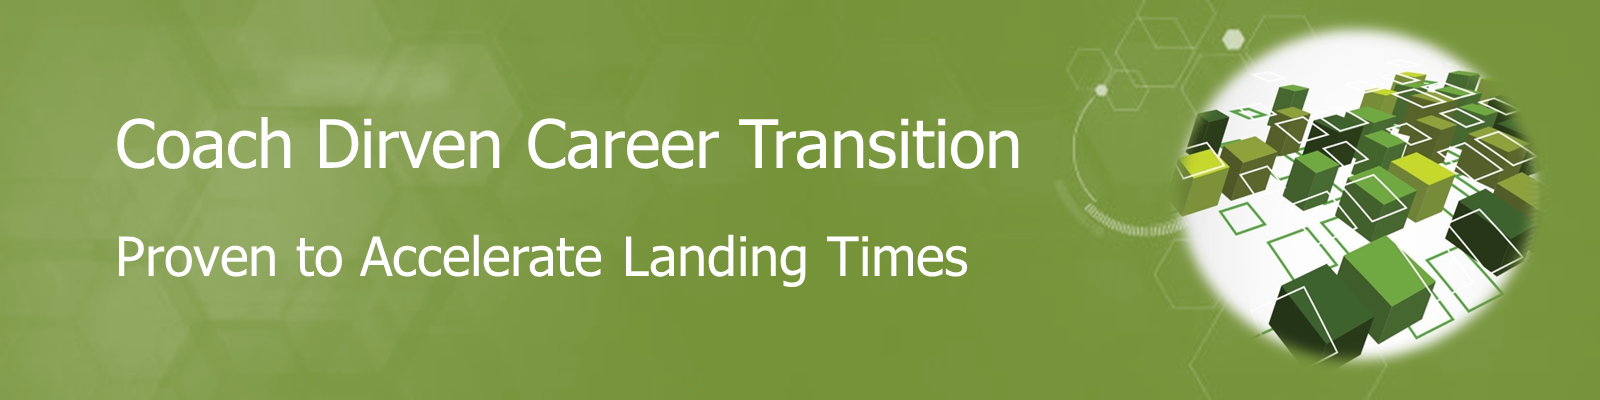 Coach Driven Career Transition Proven to Accelerate Landing Times